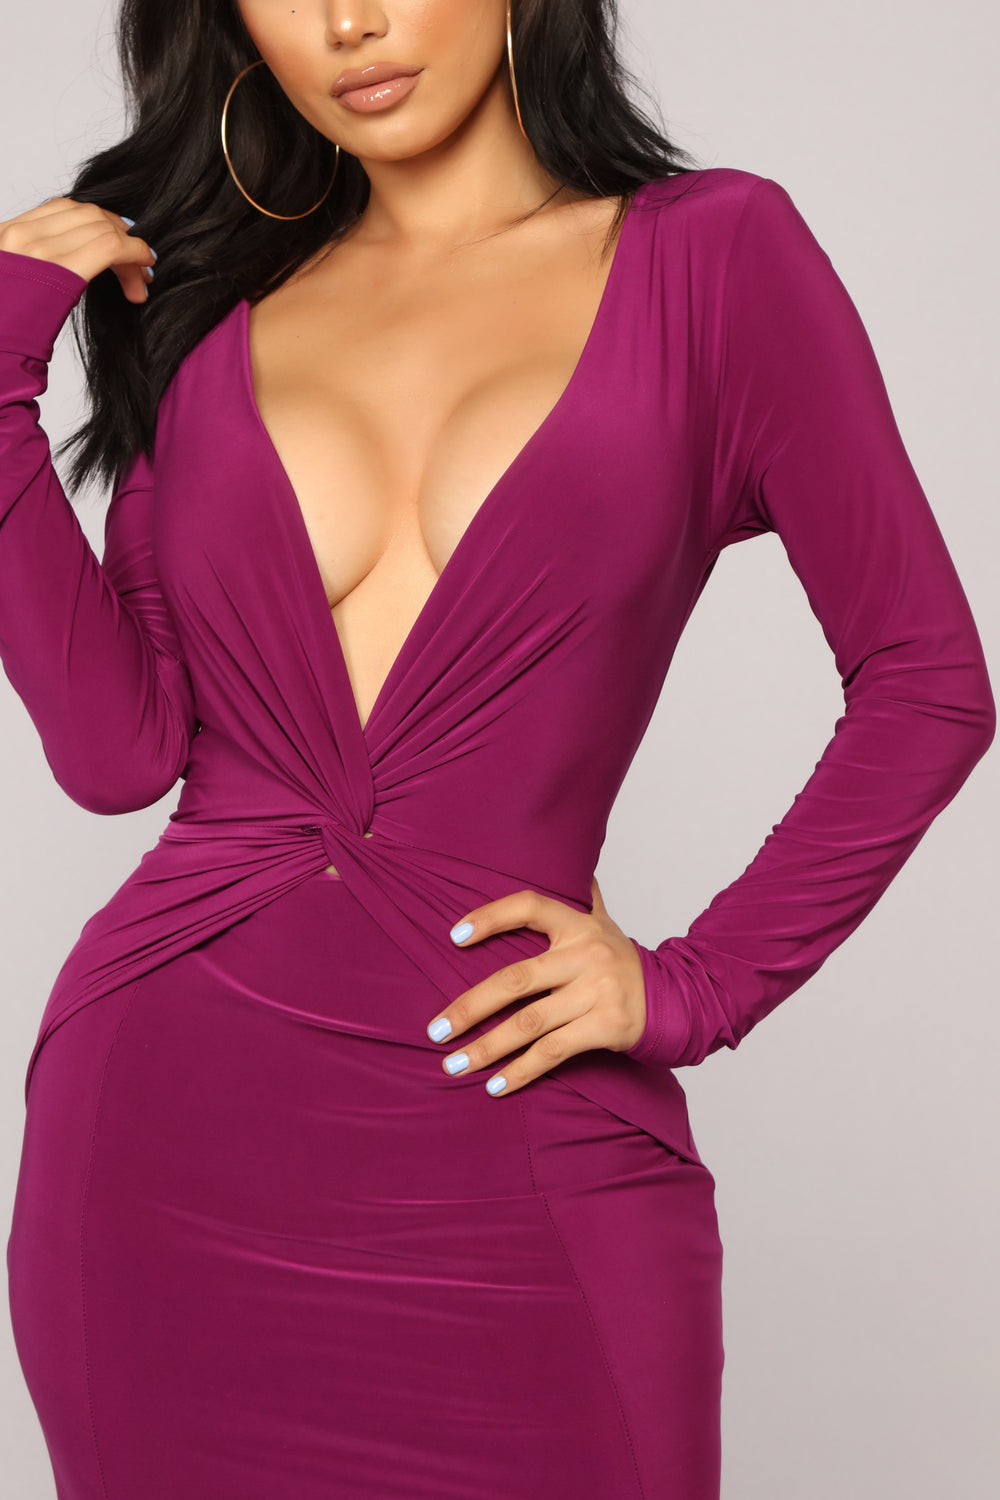 Mara Knot Dress - Magenta